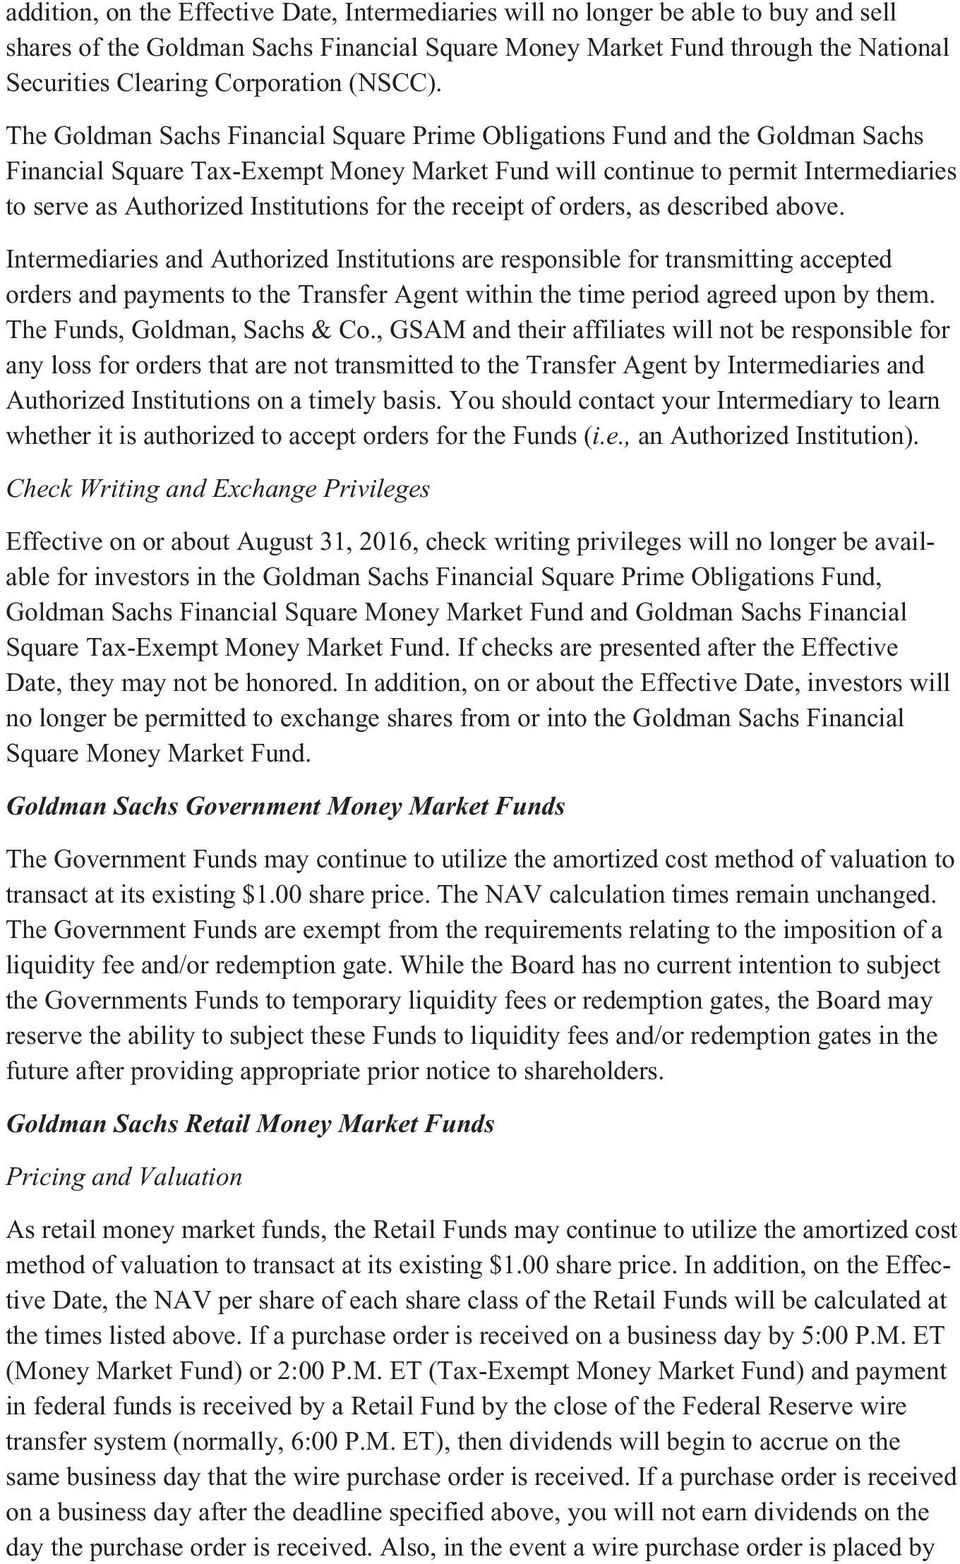 The Goldman Sachs Financial Square Prime Obligations Fund and the Goldman Sachs Financial Square Tax-Exempt Money Market Fund will continue to permit Intermediaries to serve as Authorized